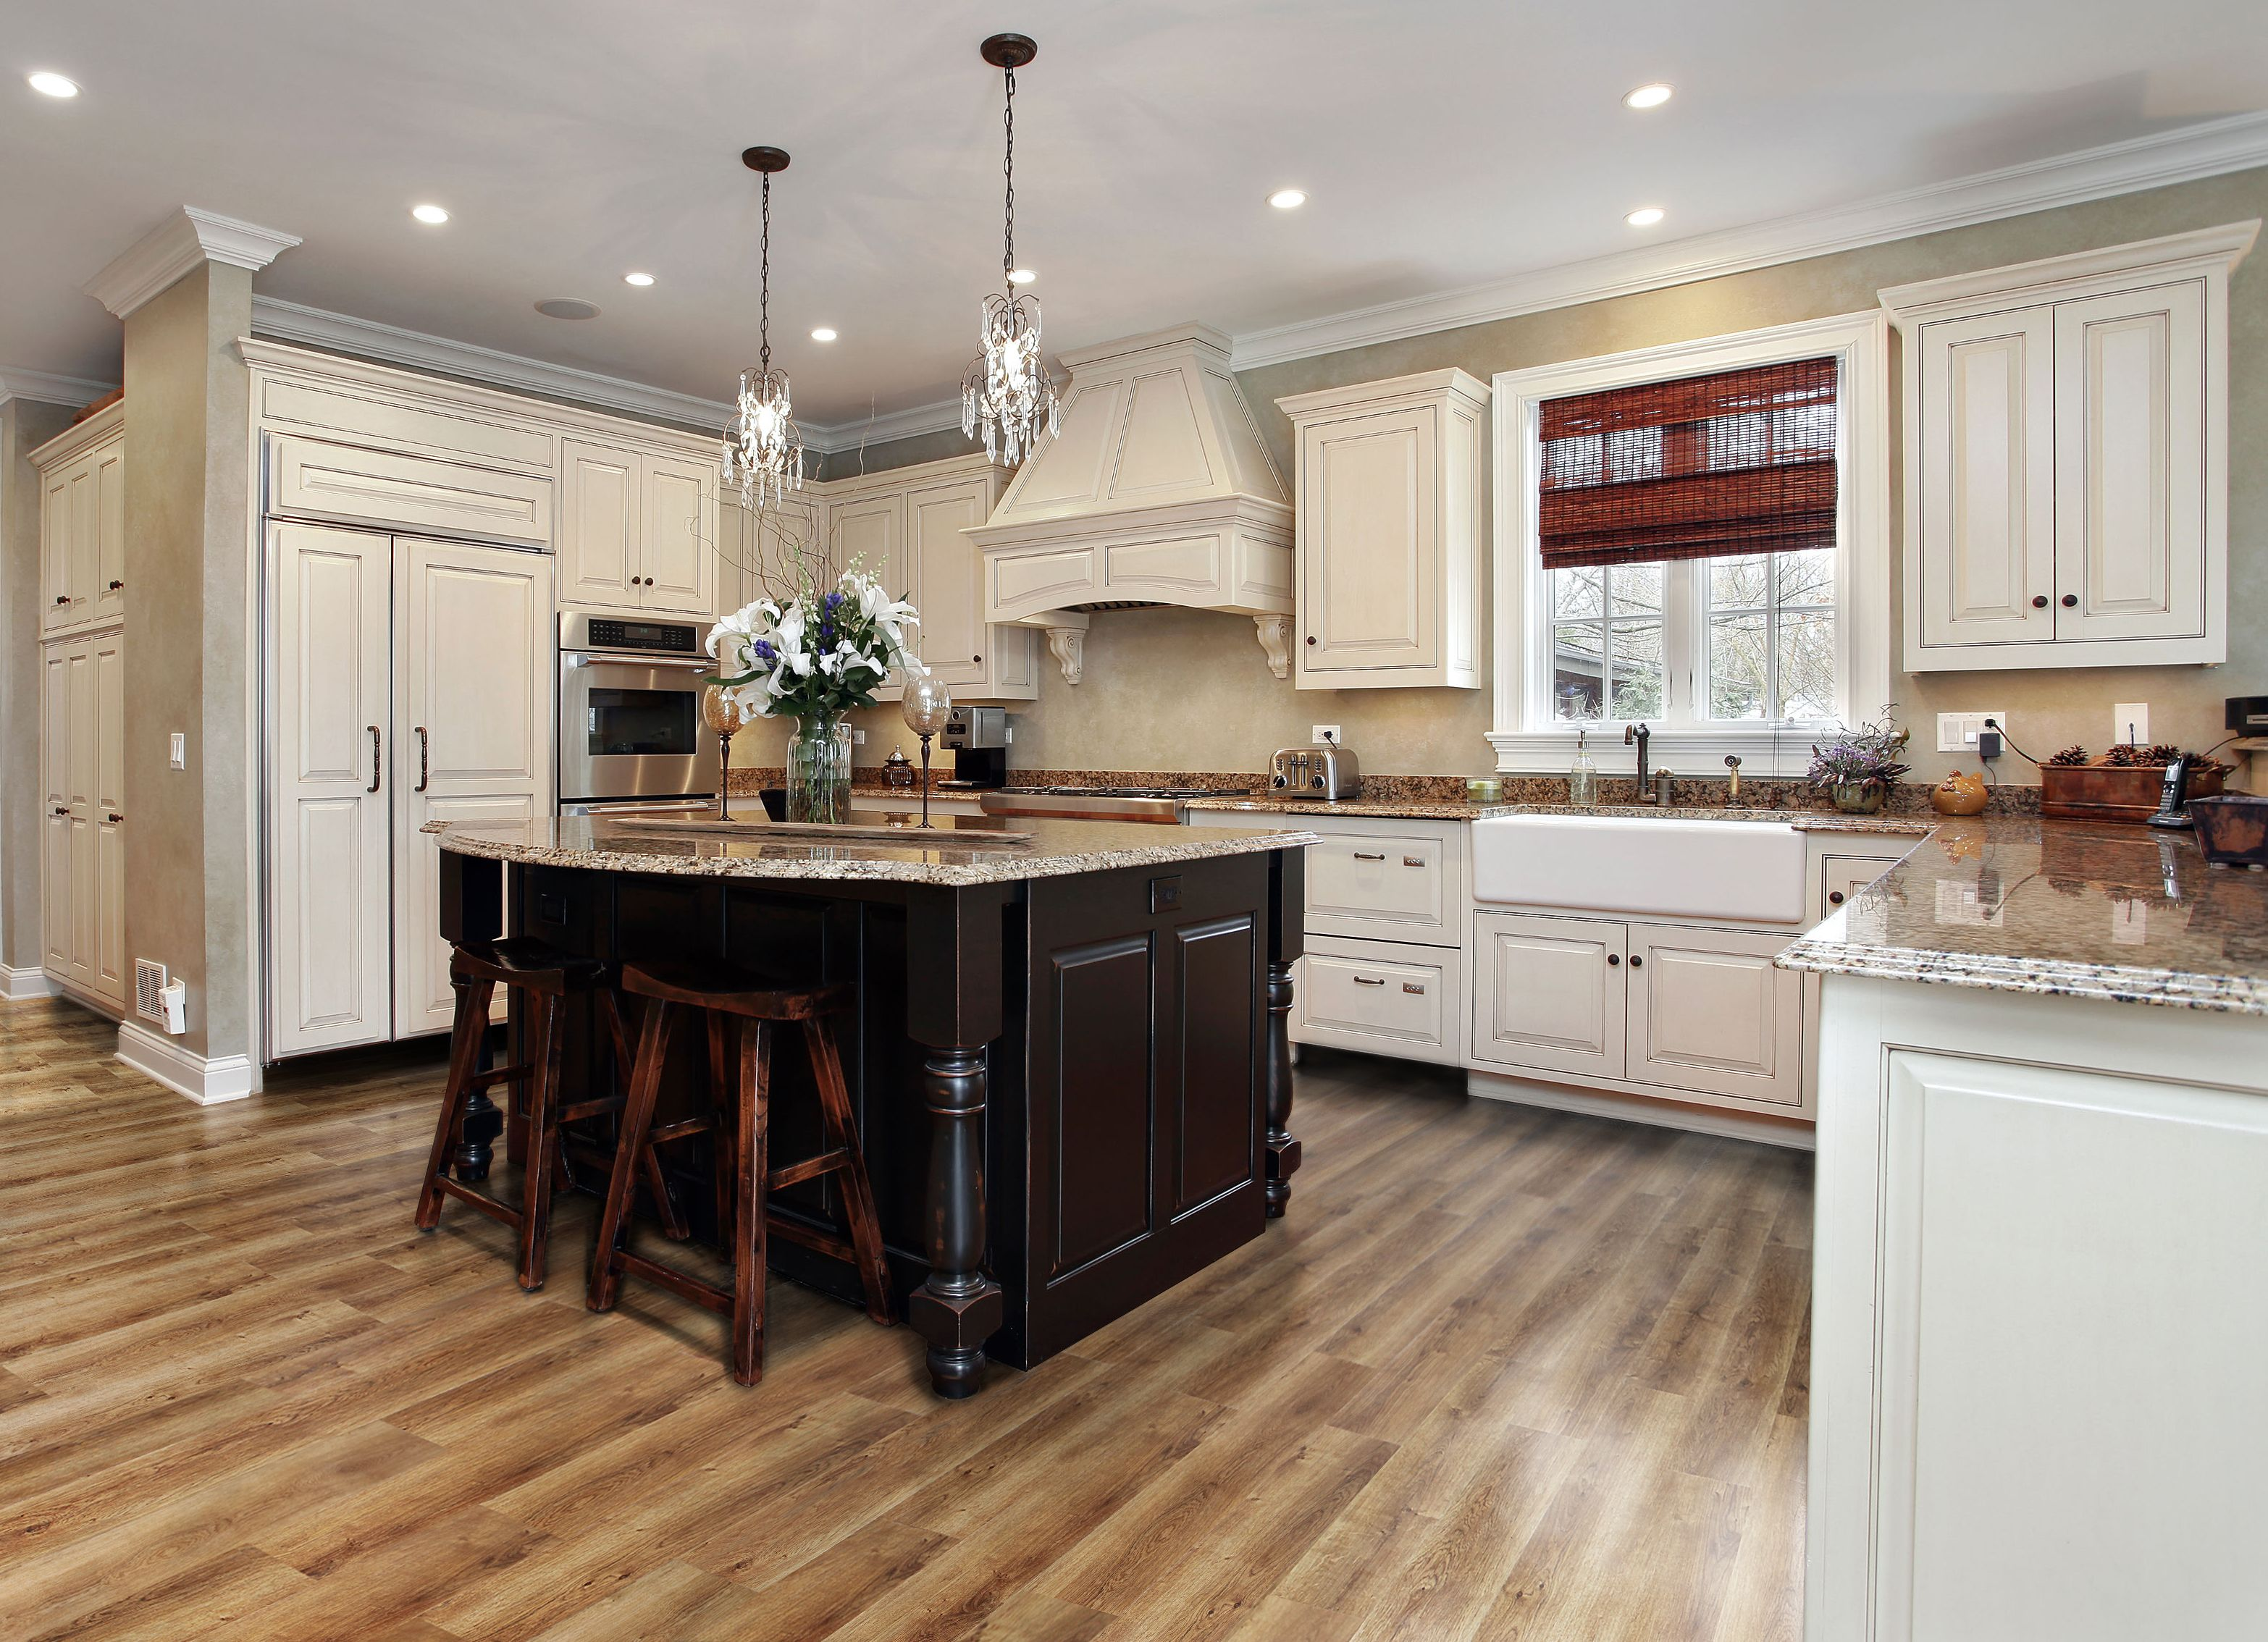 Add function and style to your kitchen, bathroom, and